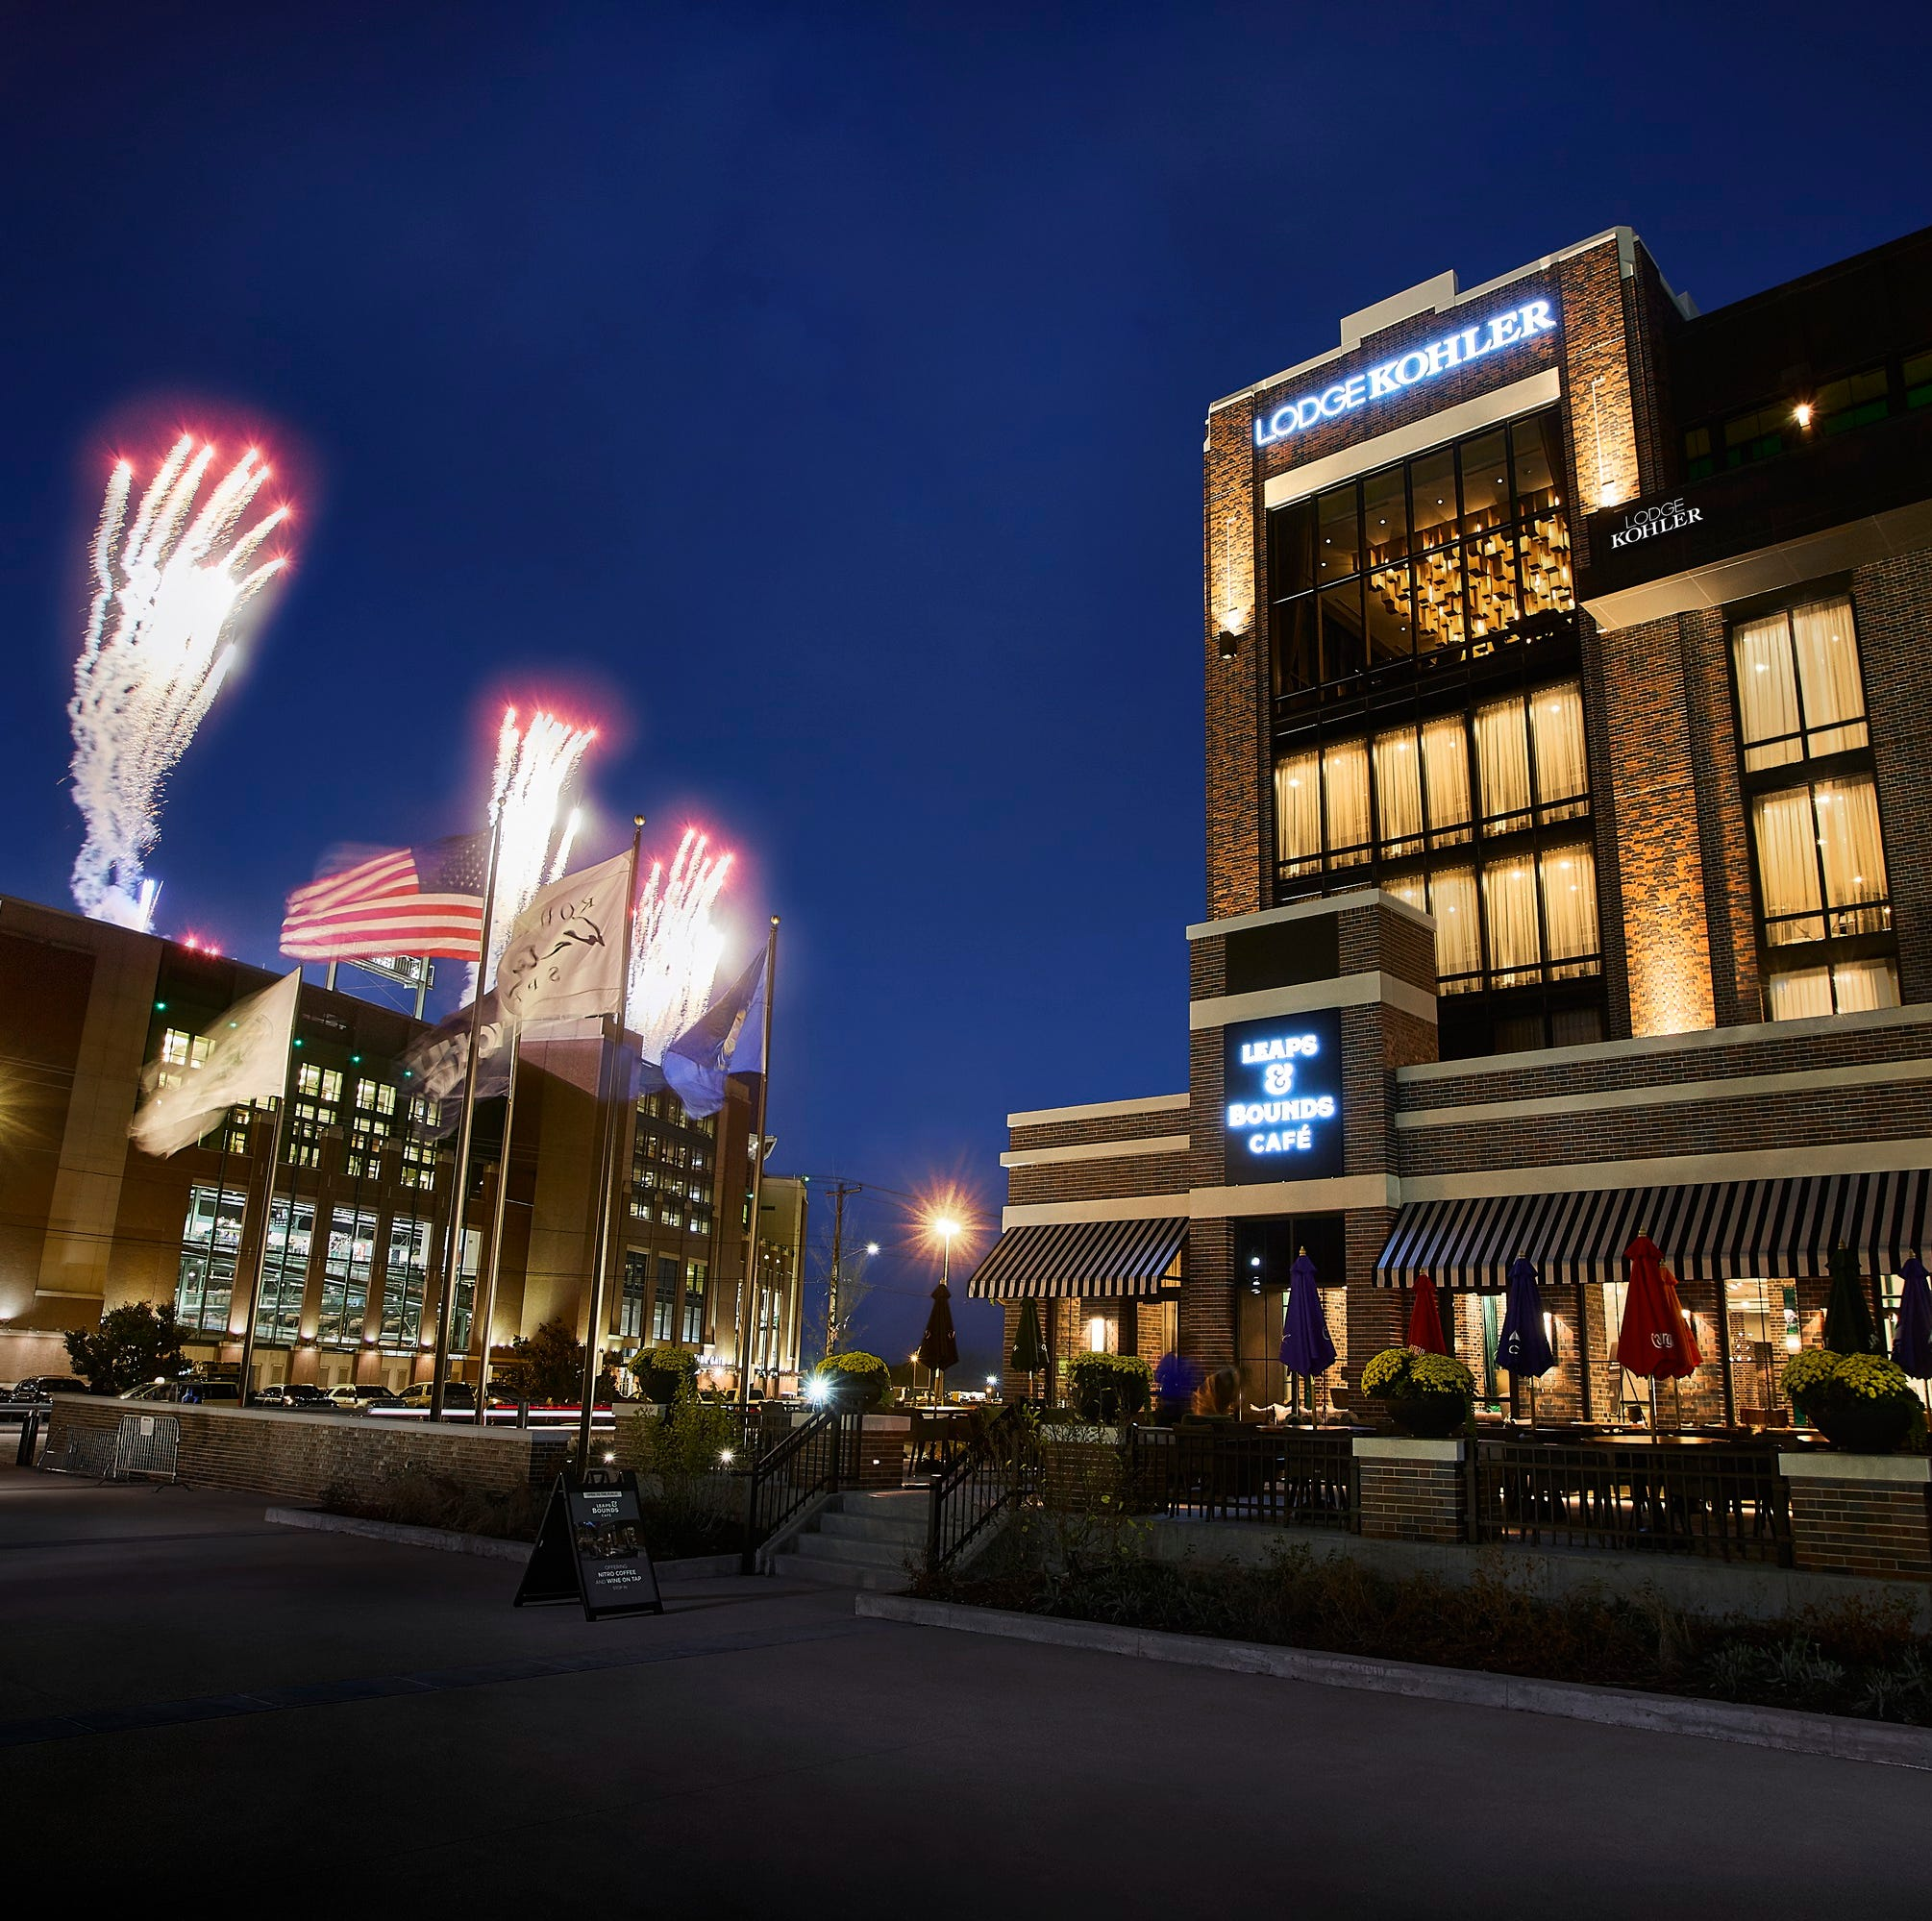 Lodge Kohler is a winning addition to Green Bay's Titletown District